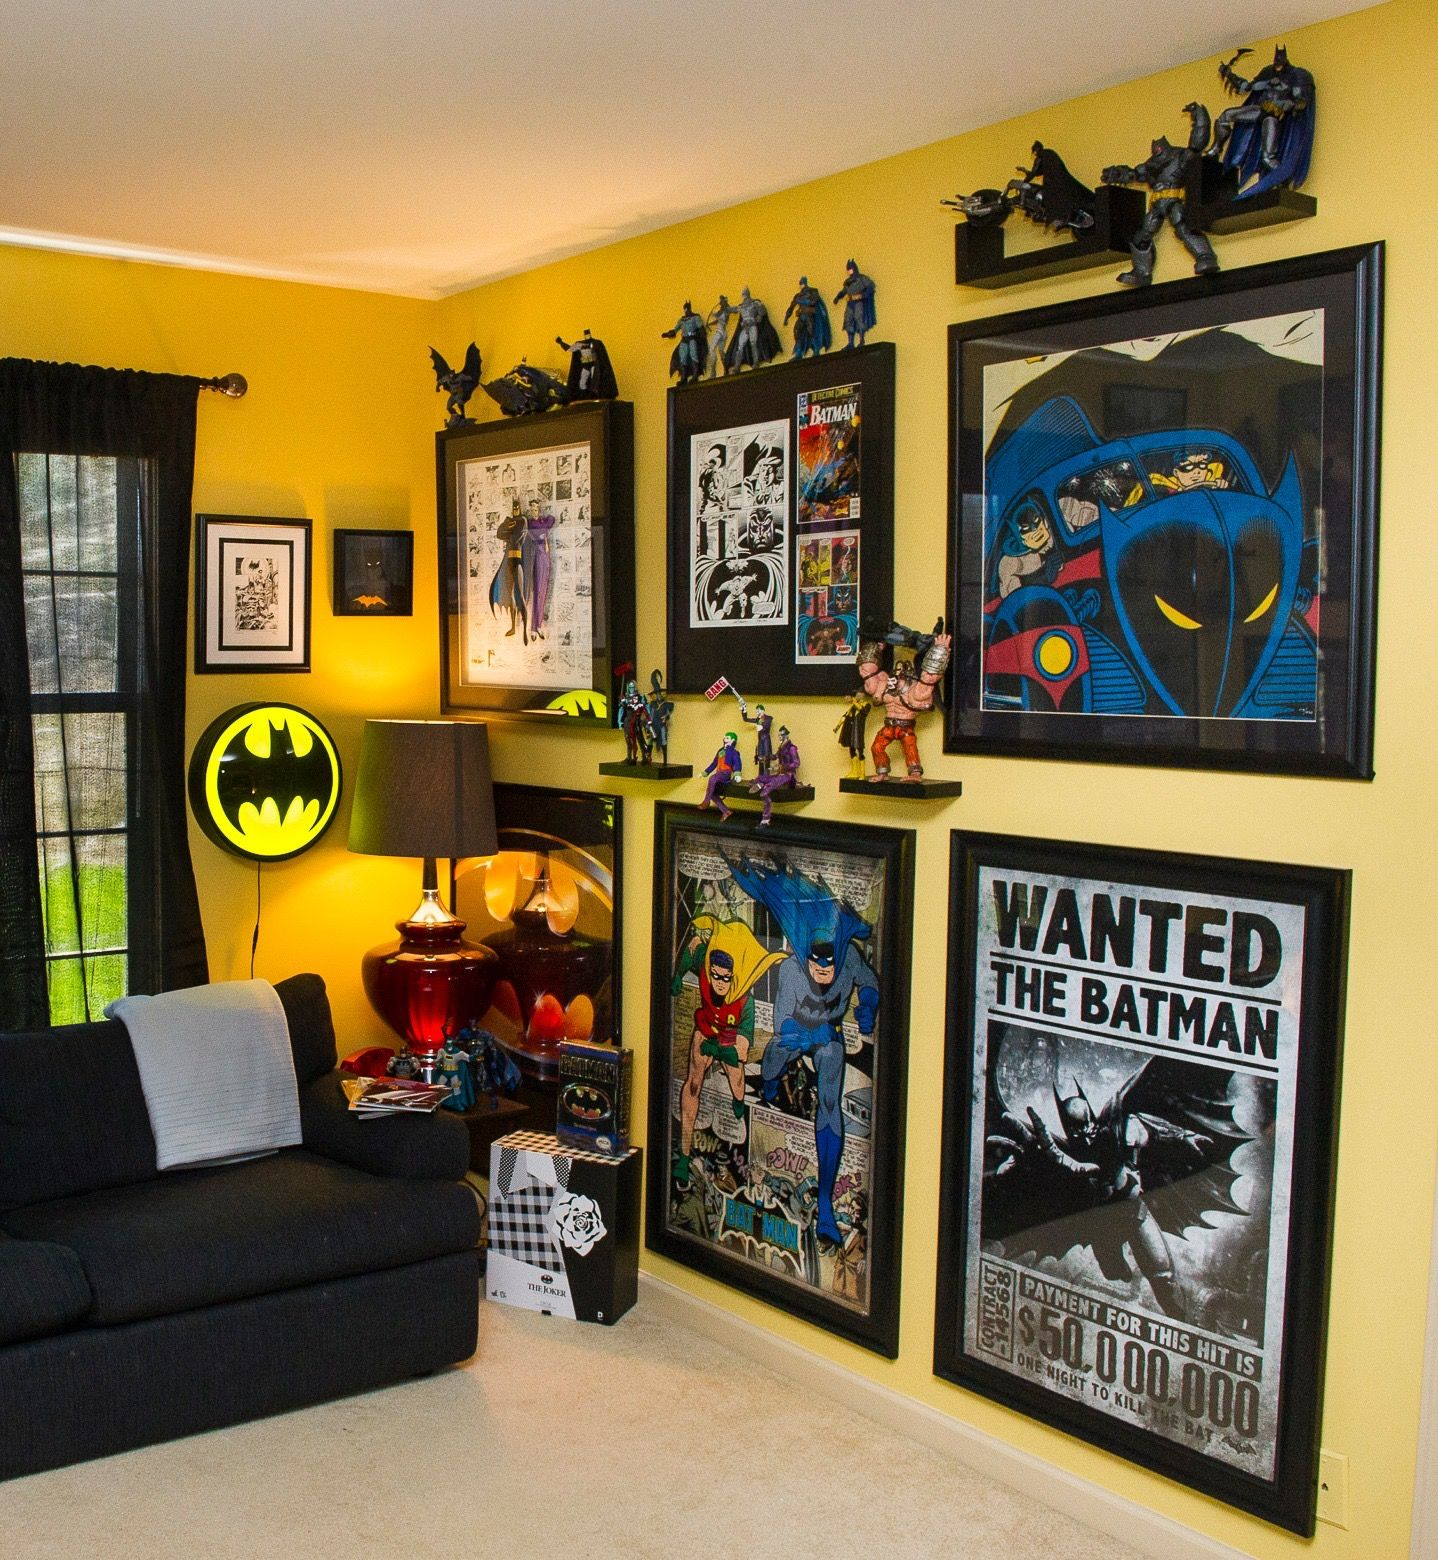 11 Cool Home Office Ideas For Men: 15 Game Room Ideas You Did Not Know About + Pros & Cons